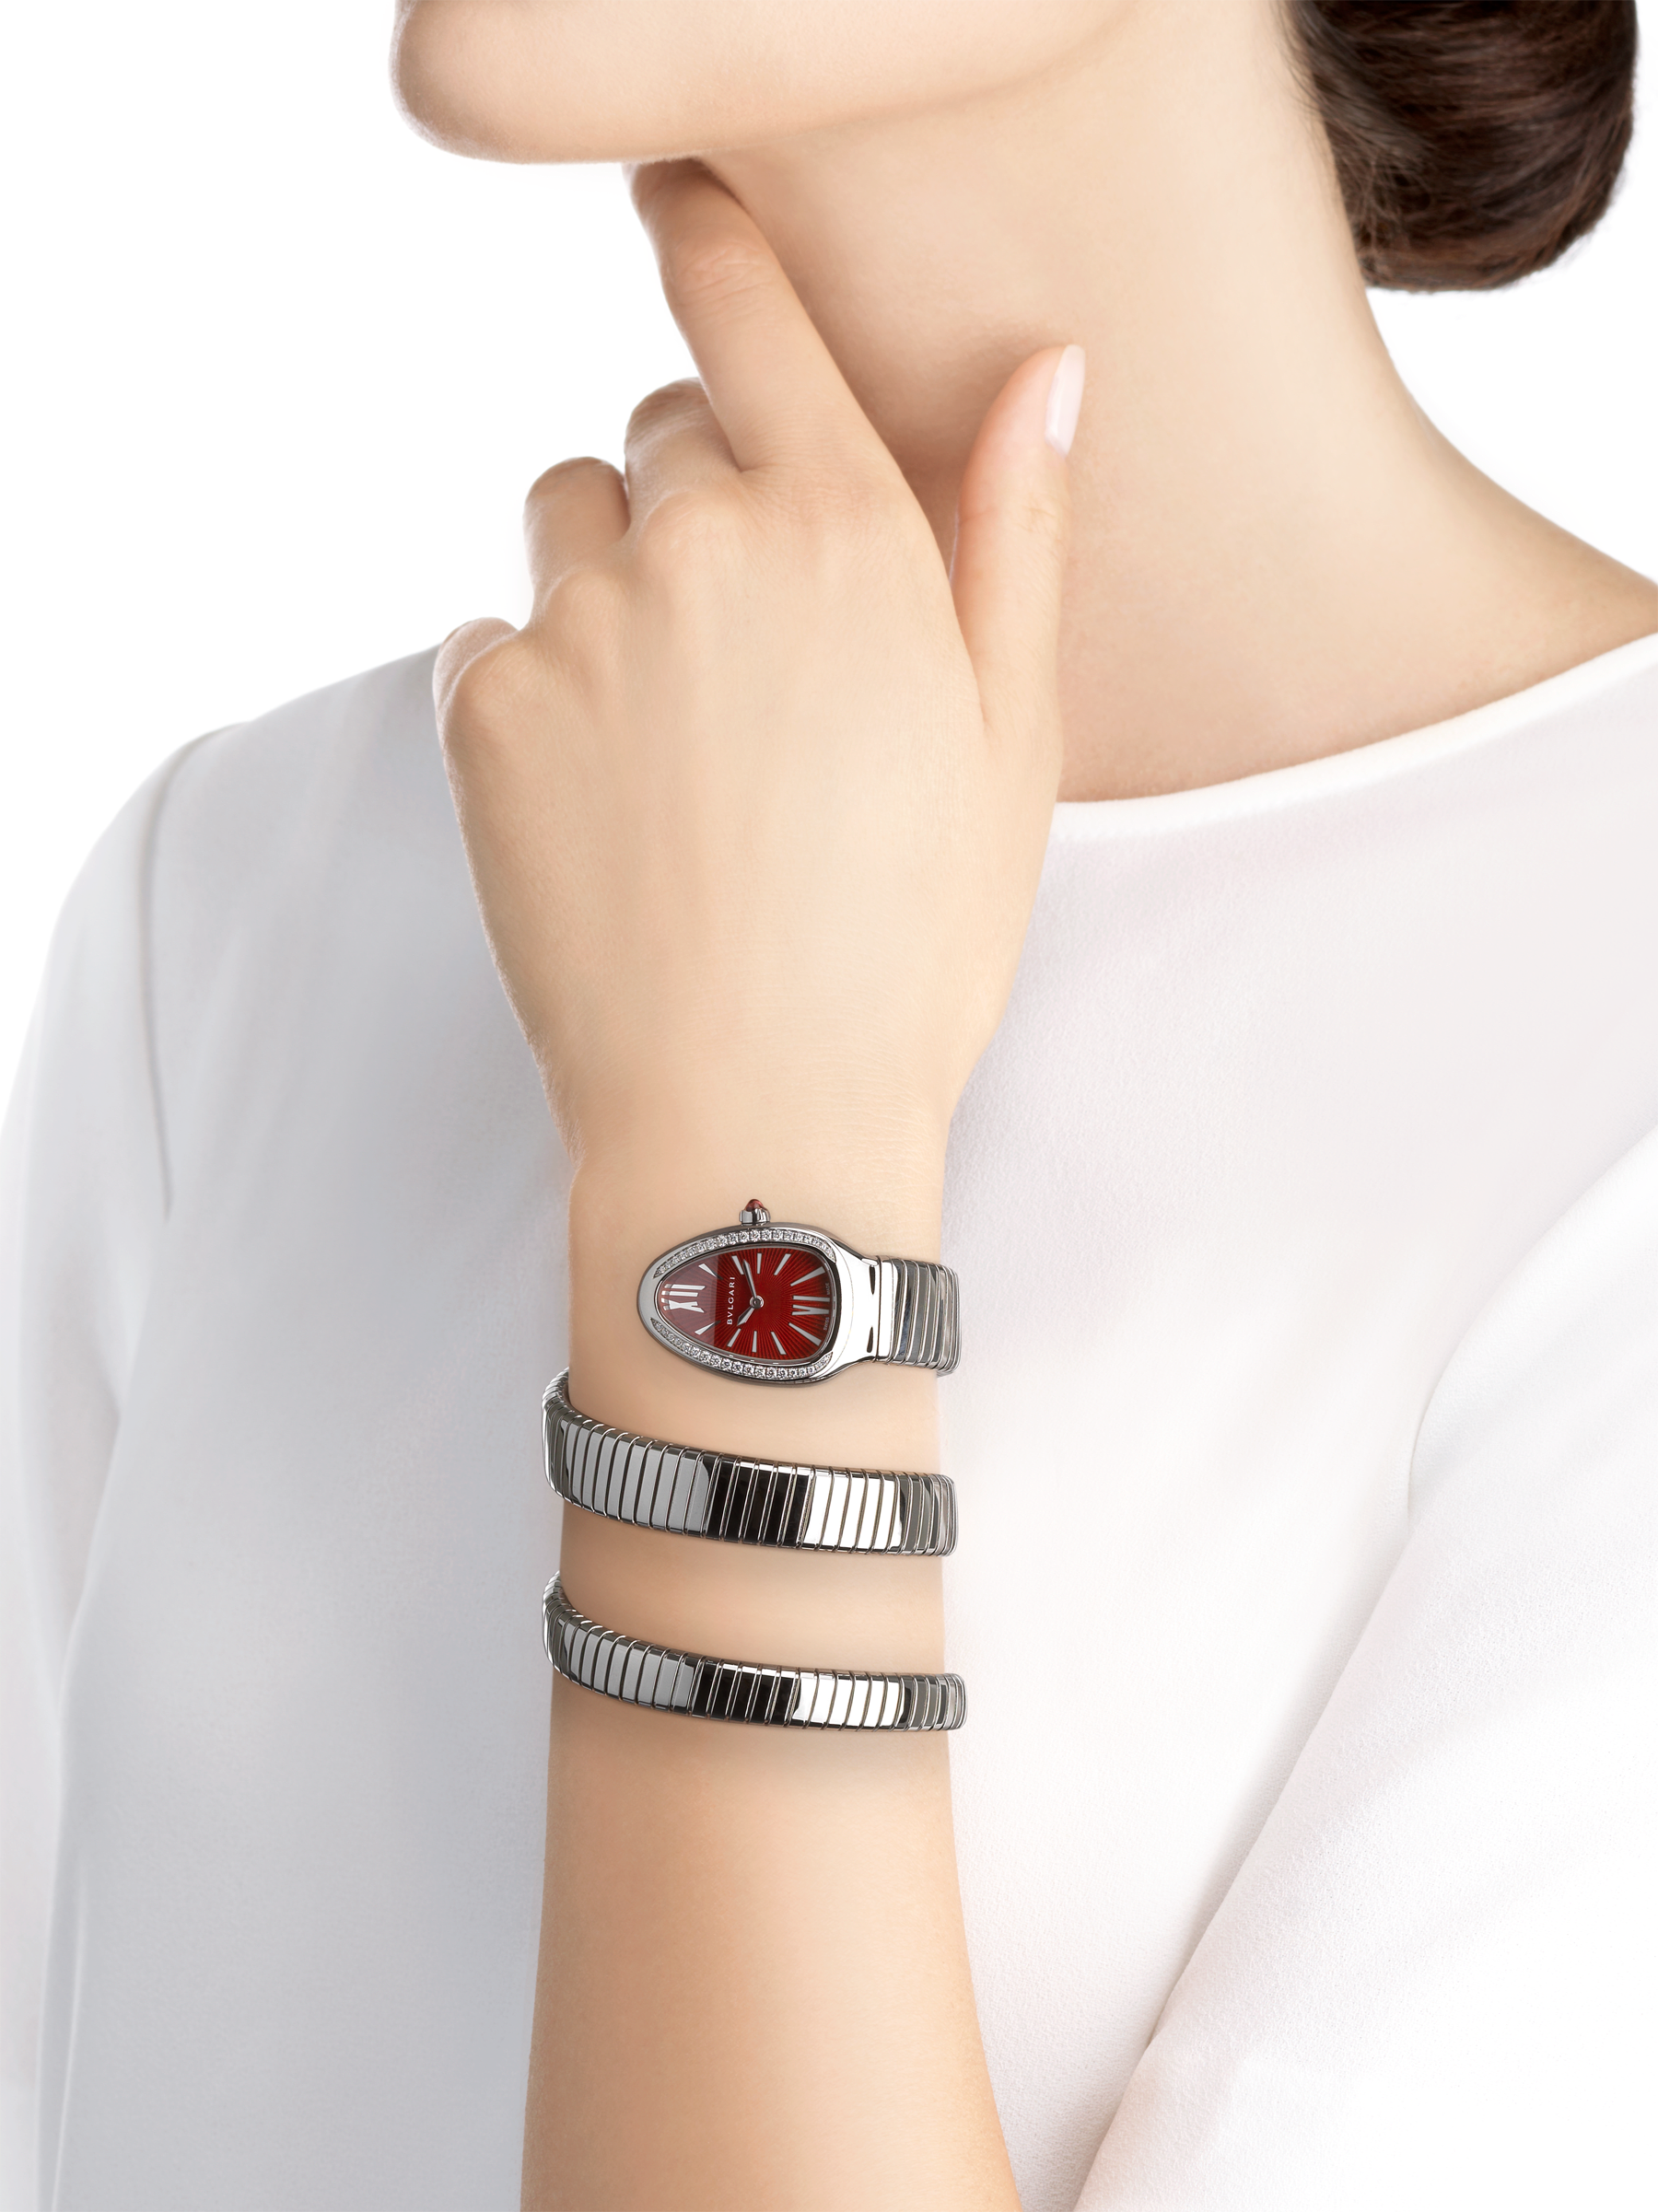 Serpenti Tubogas double spiral watch with stainless steel case set with brilliant cut diamonds, red lacquered dial and stainless steel bracelet. 102682 image 4